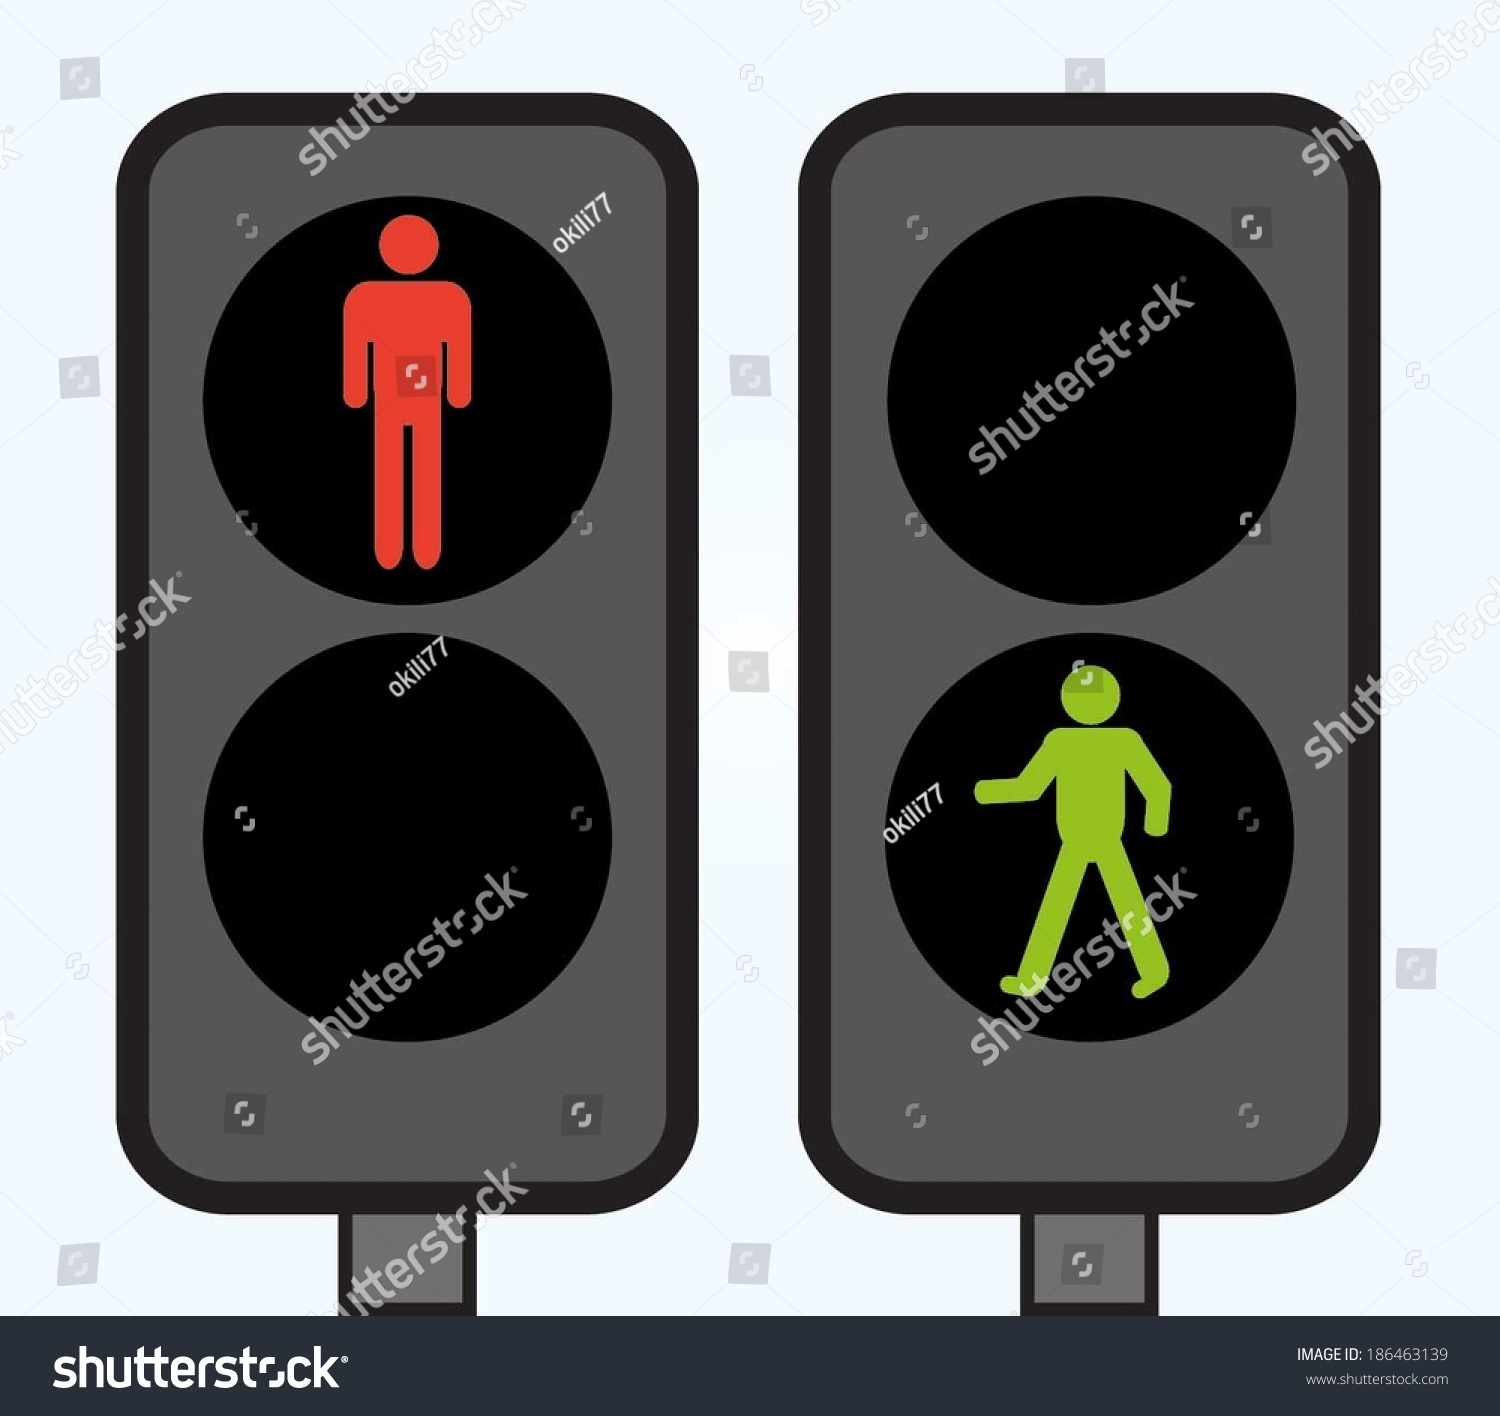 Pedestrian Traffic Lights Illustration Vector Stock Vector ...